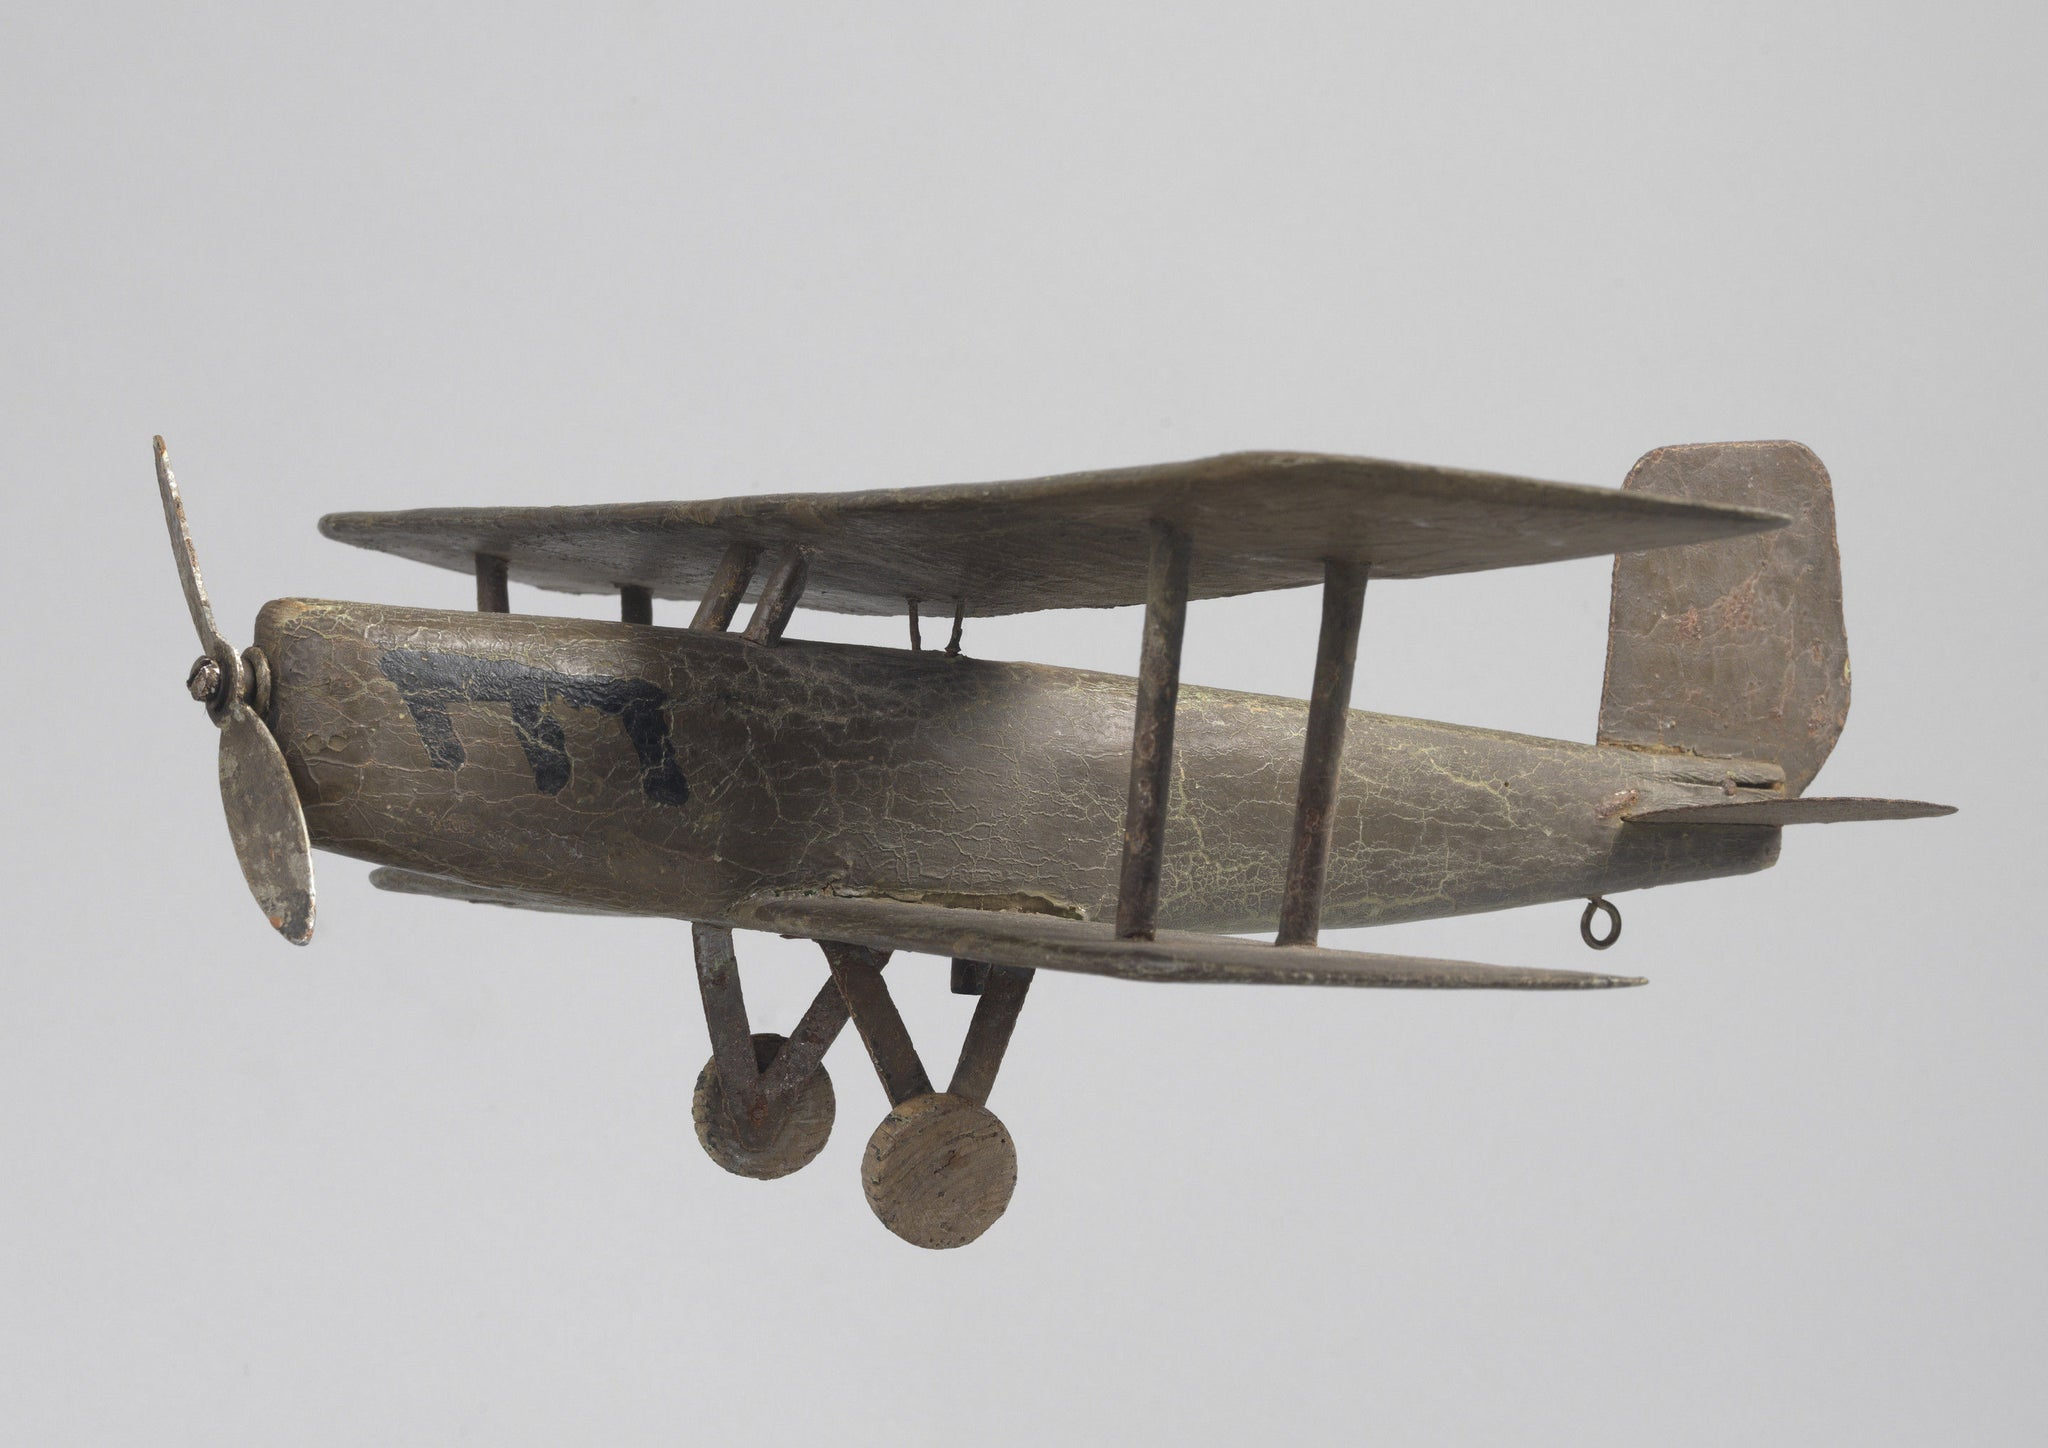 Unusual Folk Art Bi-Plane Weathevane